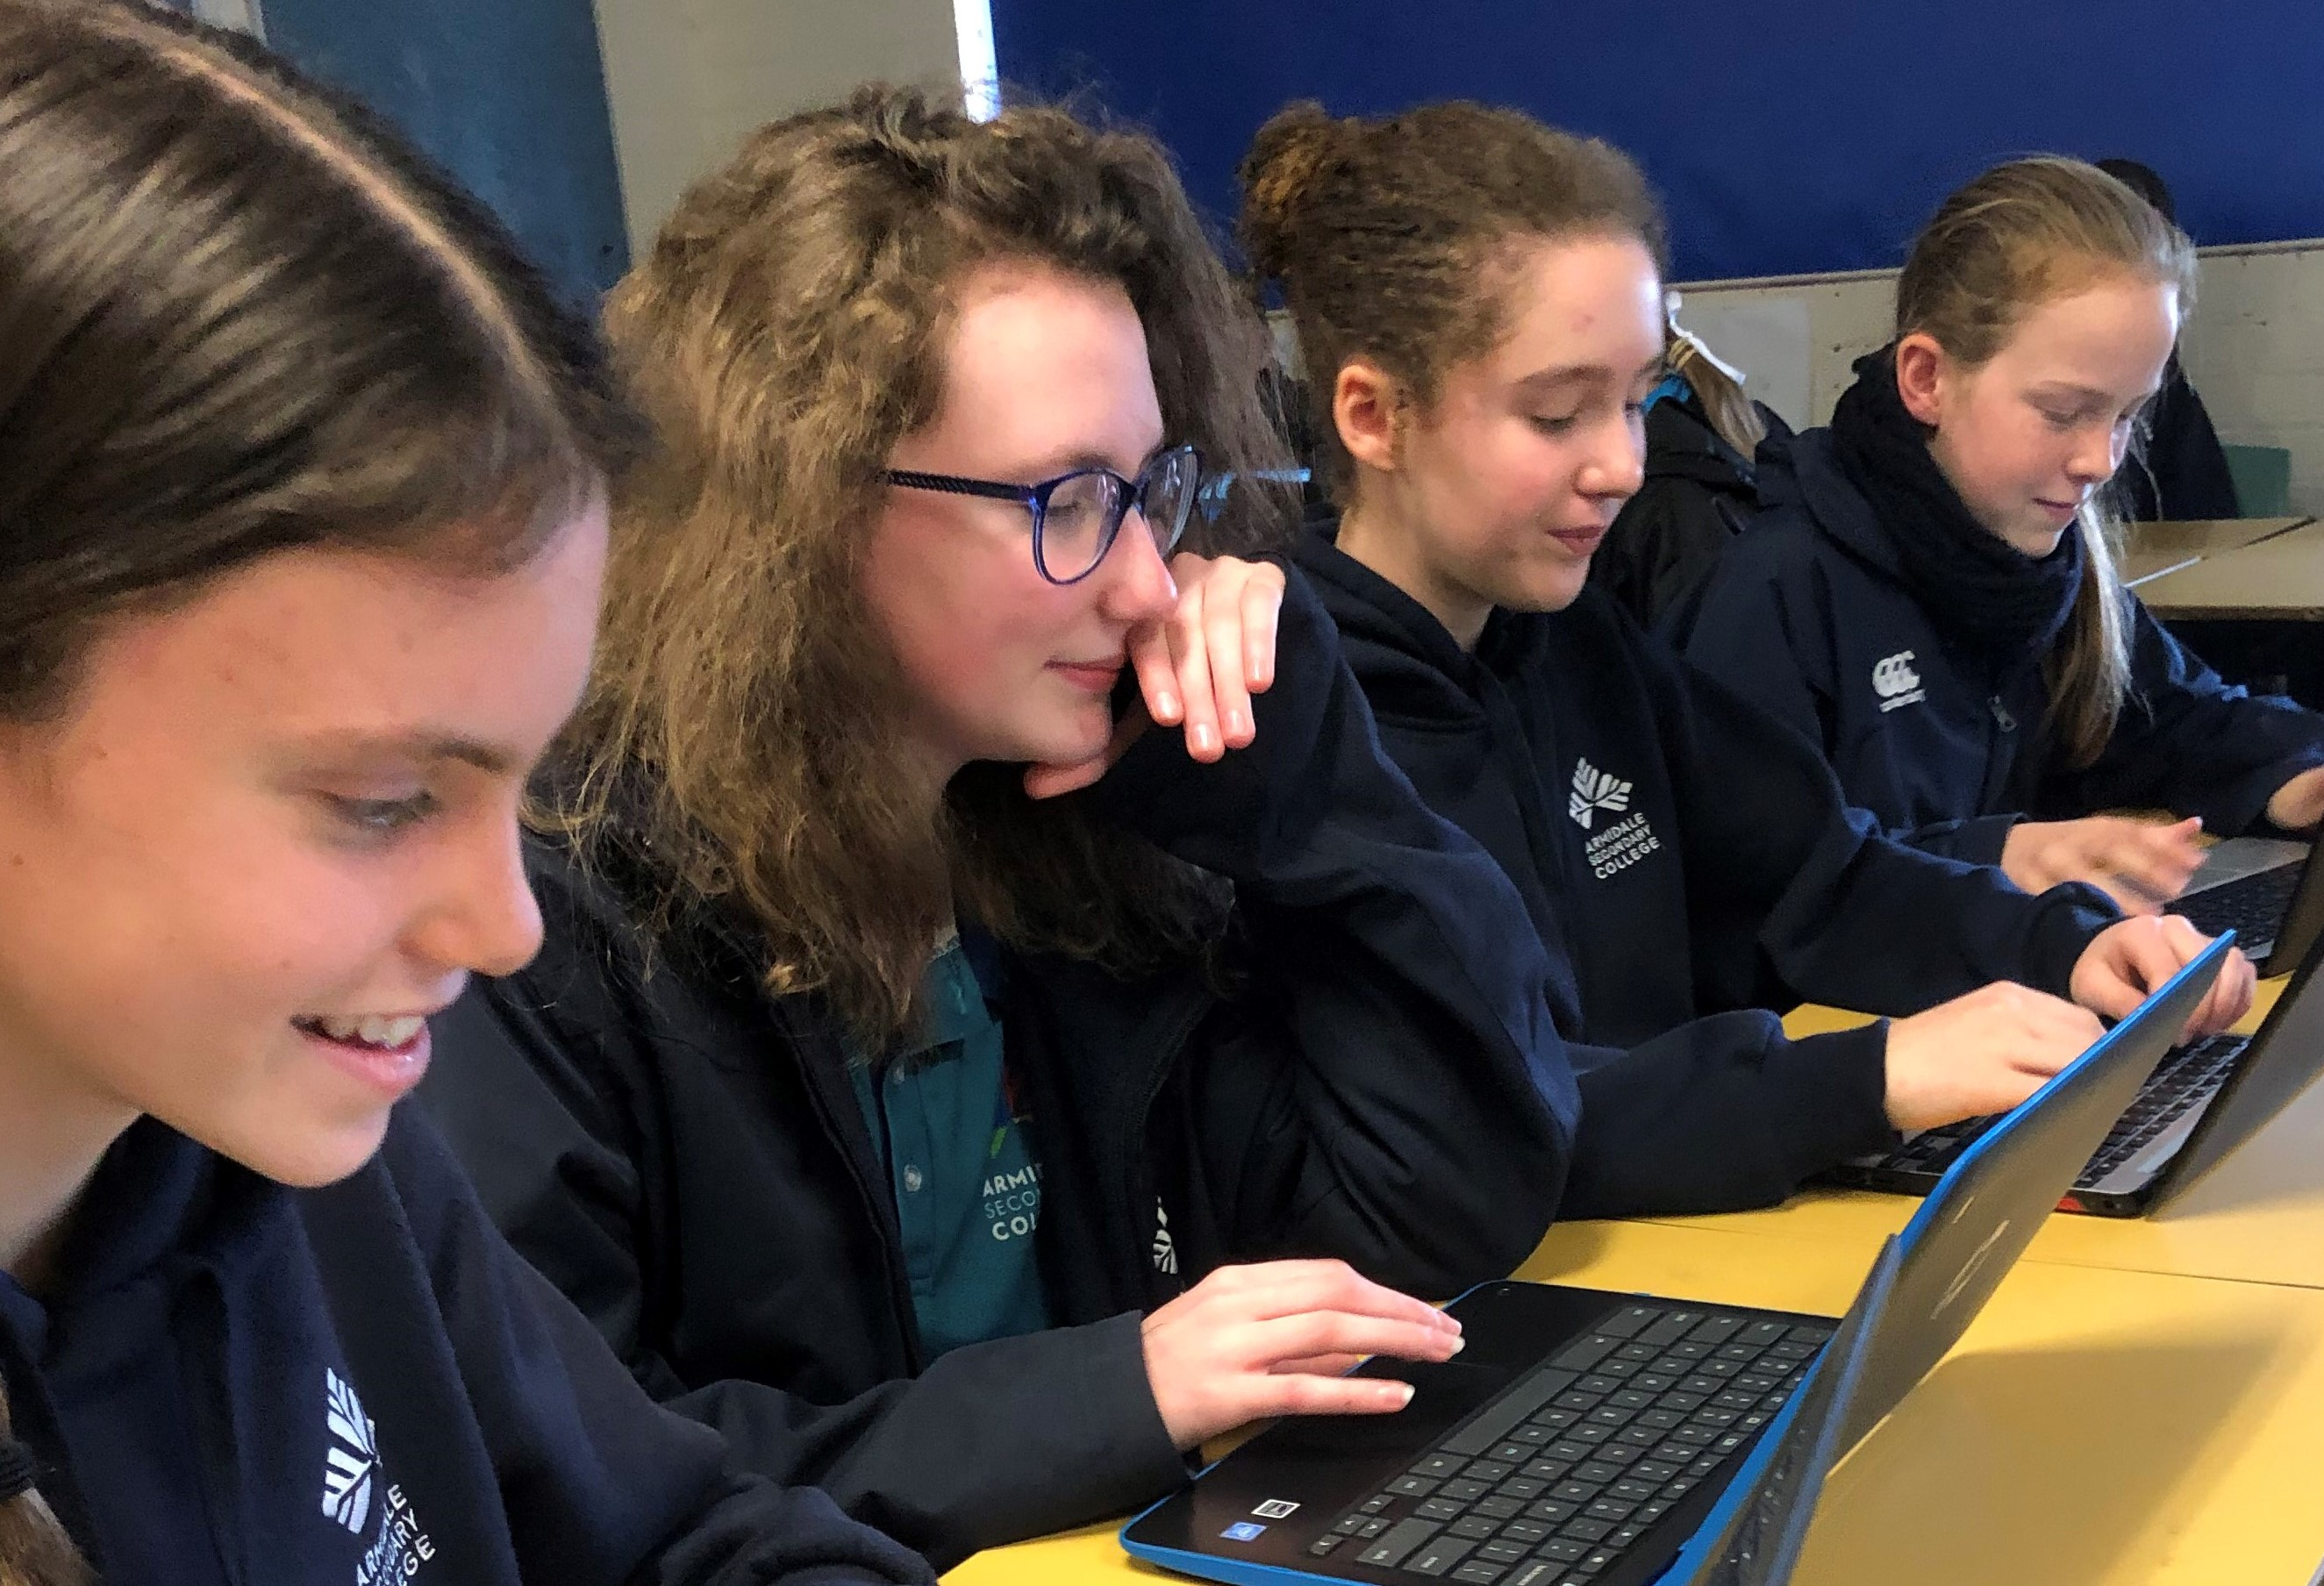 Year 8 girls studying with computers